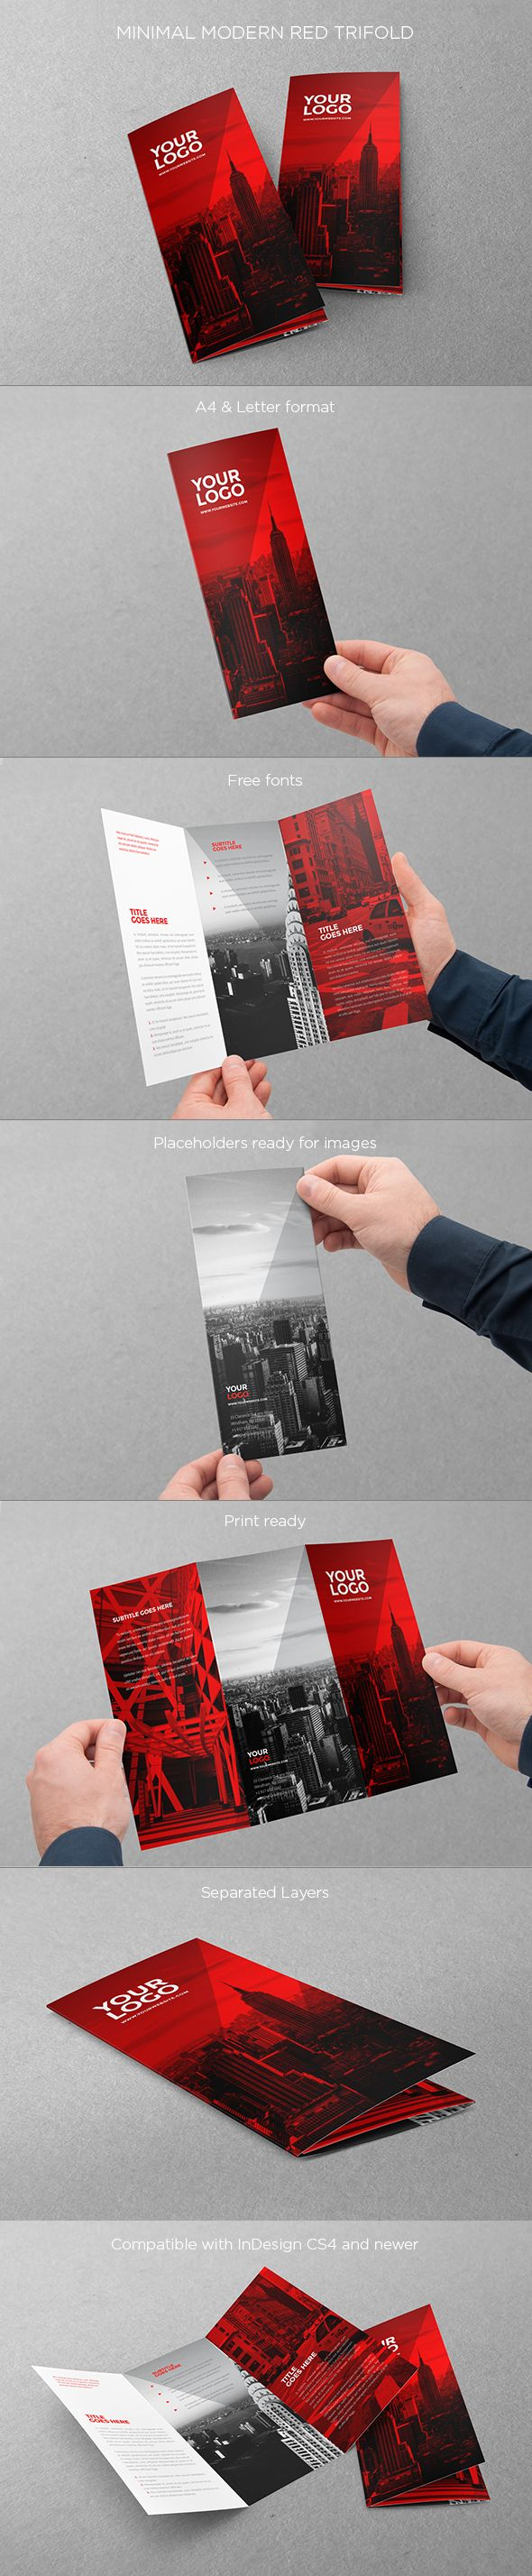 Minimal Modern Red Trifold. Download here: http://graphicriver.net/item/minimal-modern-red-trifold/11403554?ref=abradesign #brochure #trifold